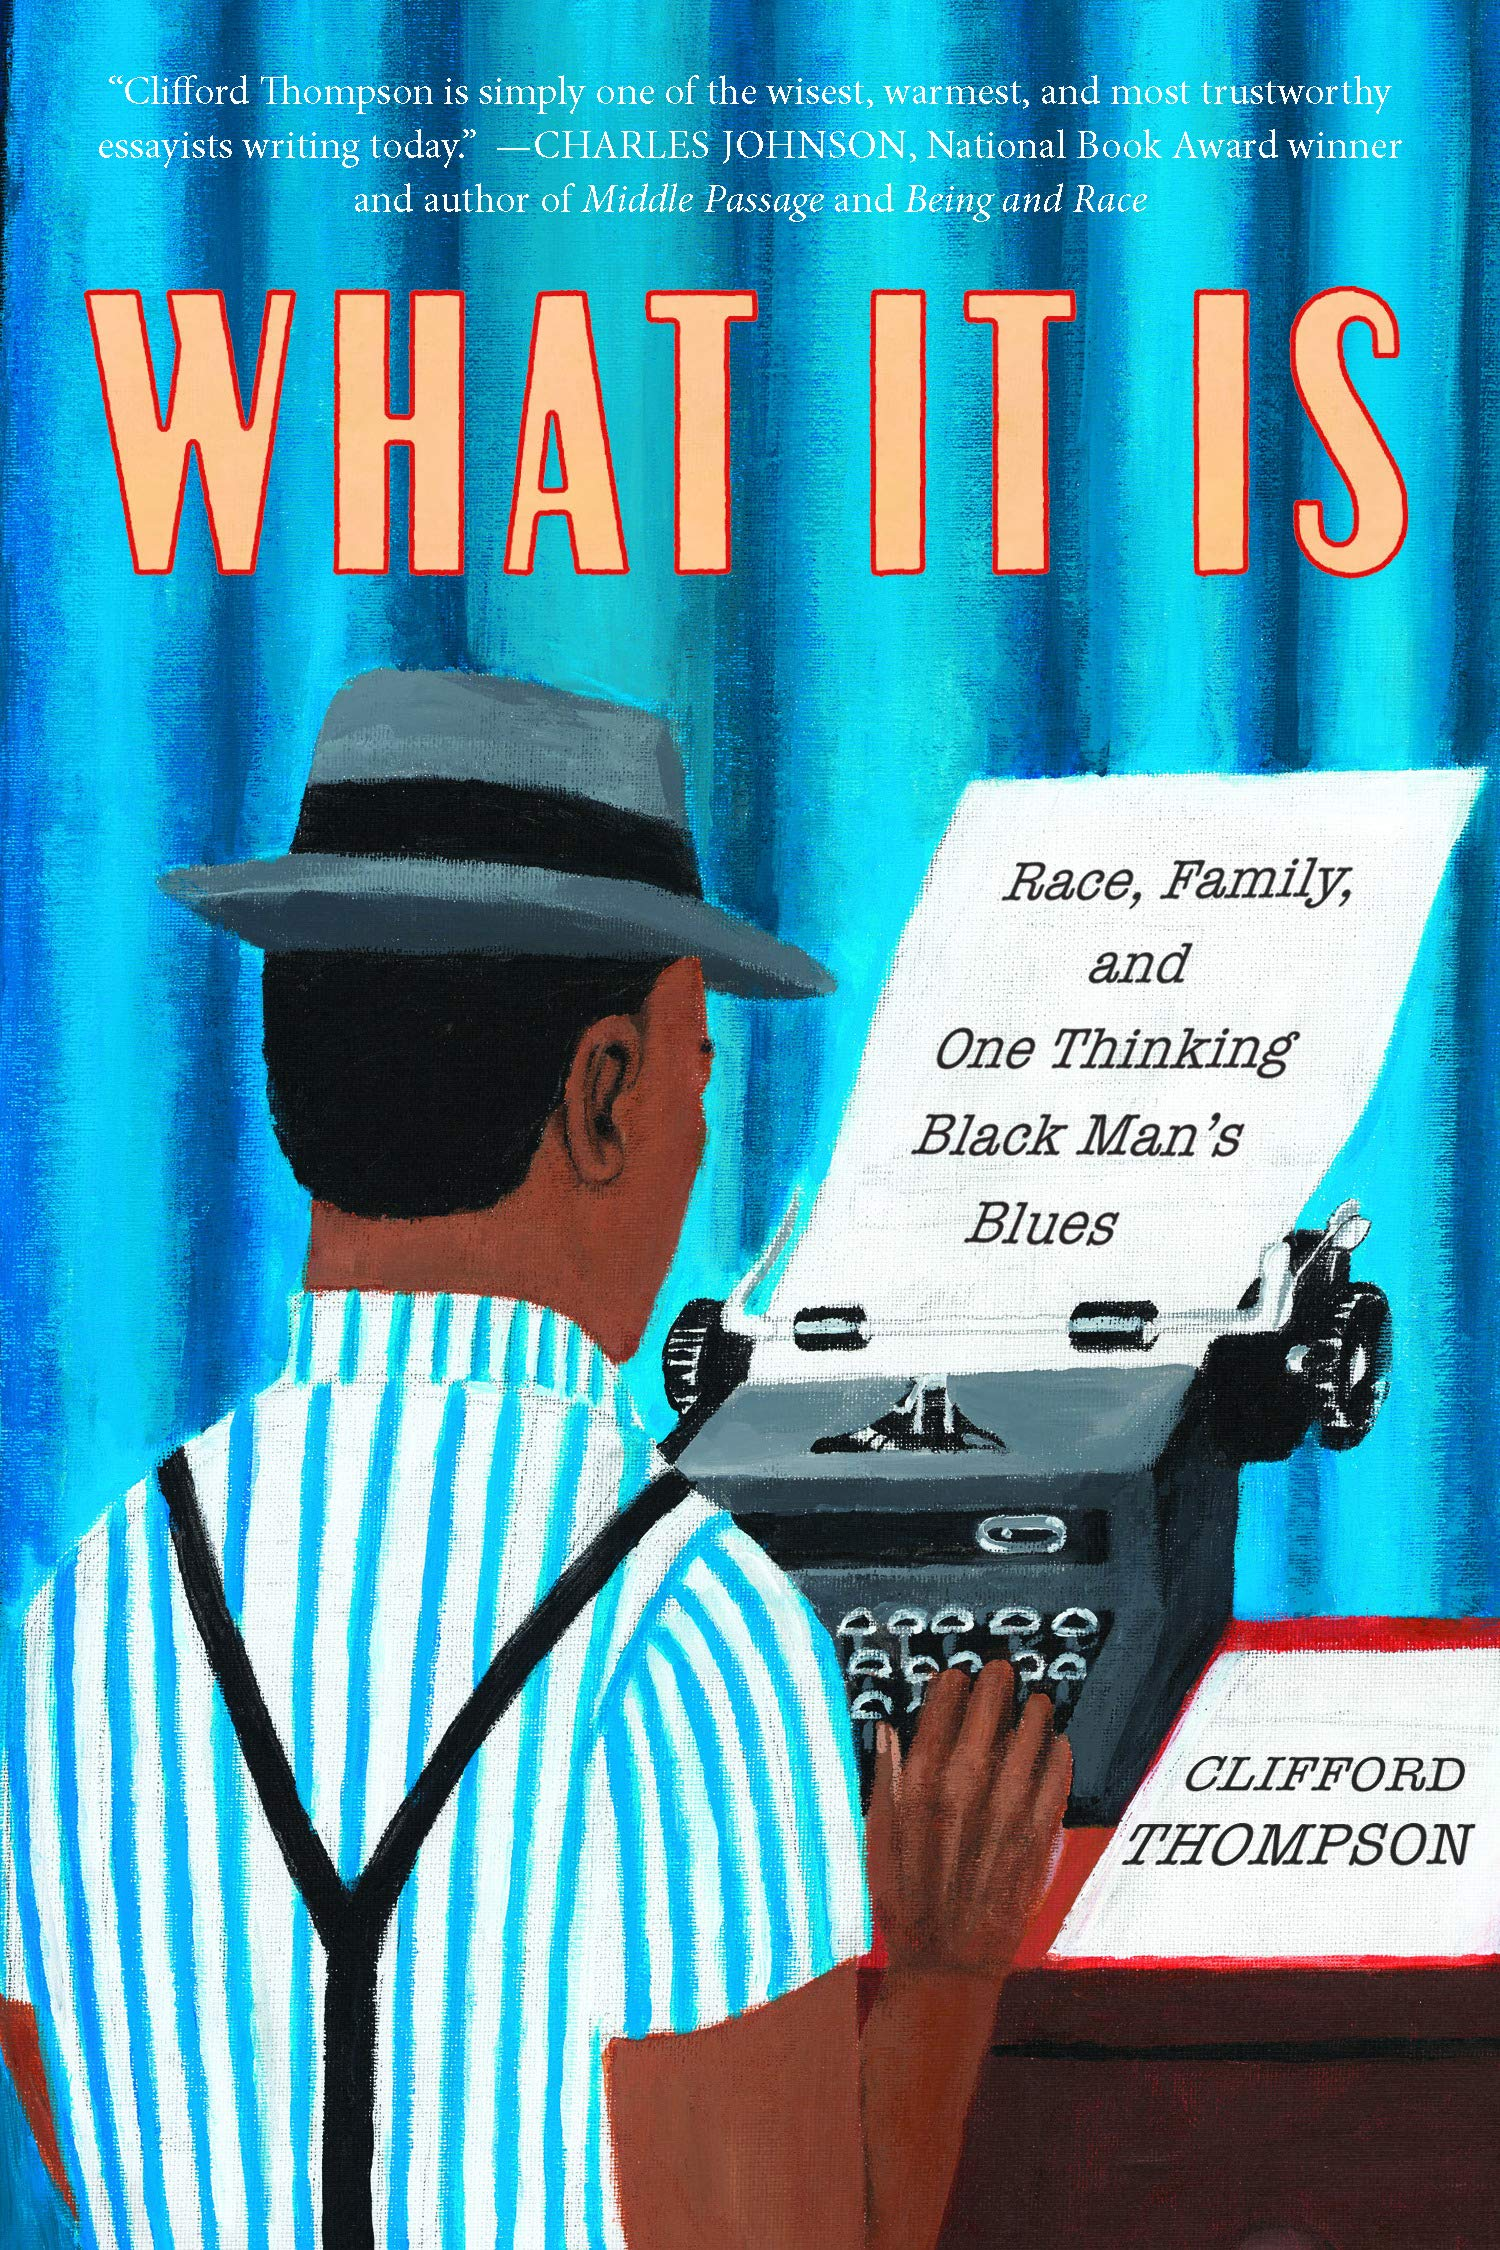 What It Is by Clifford Thompson